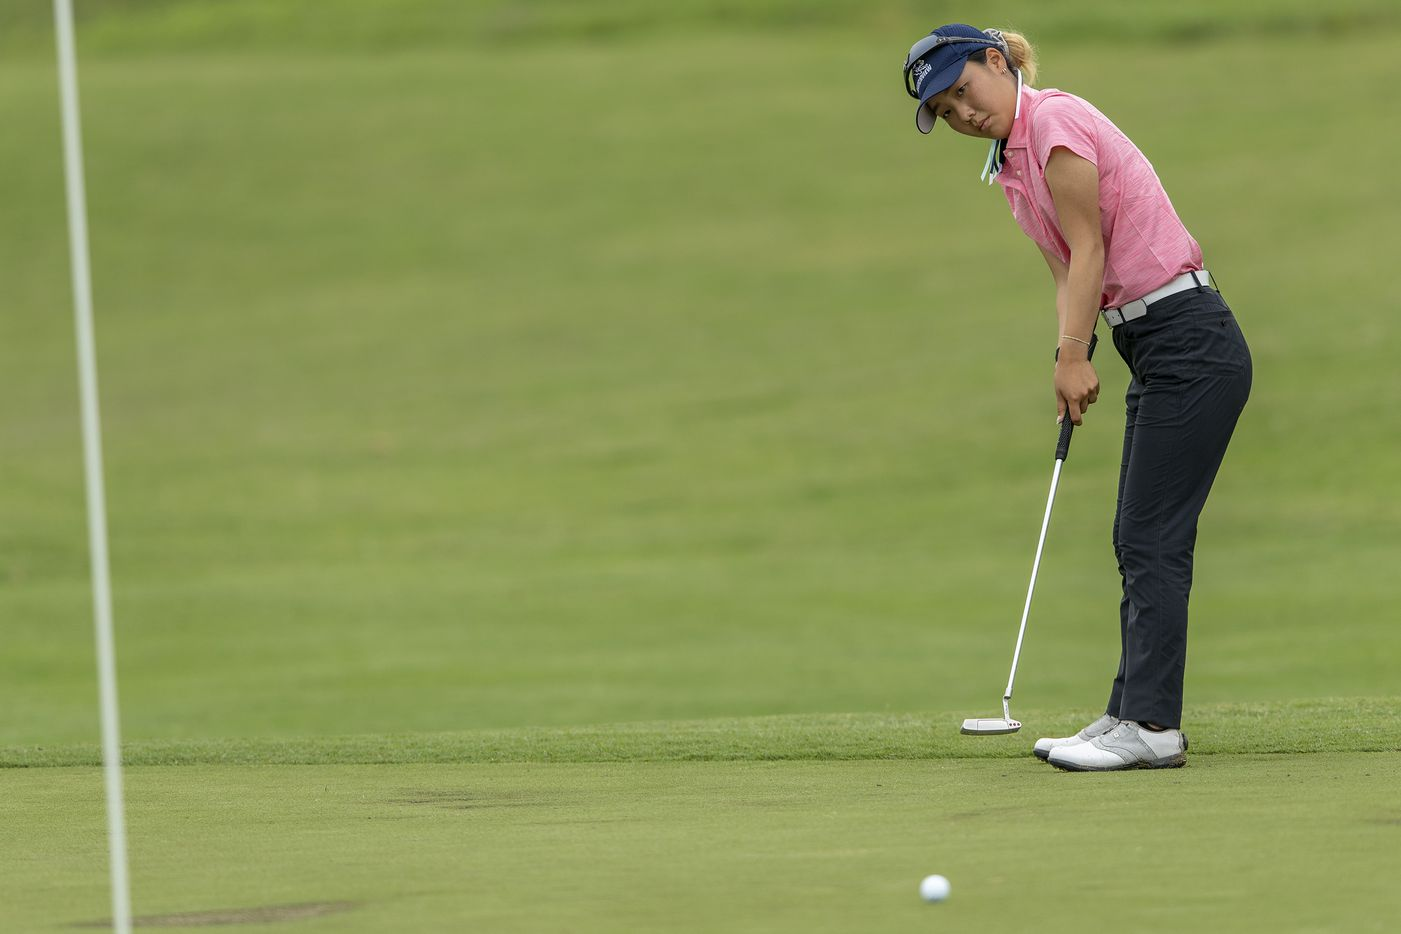 Carrollton Ranchview's Bohyun Park putts on the 10th green box during the final day of the UIL Class 4A girls golf tournament in Kyle, Tuesday, May 11, 2021. (Stephen Spillman/Special Contributor)